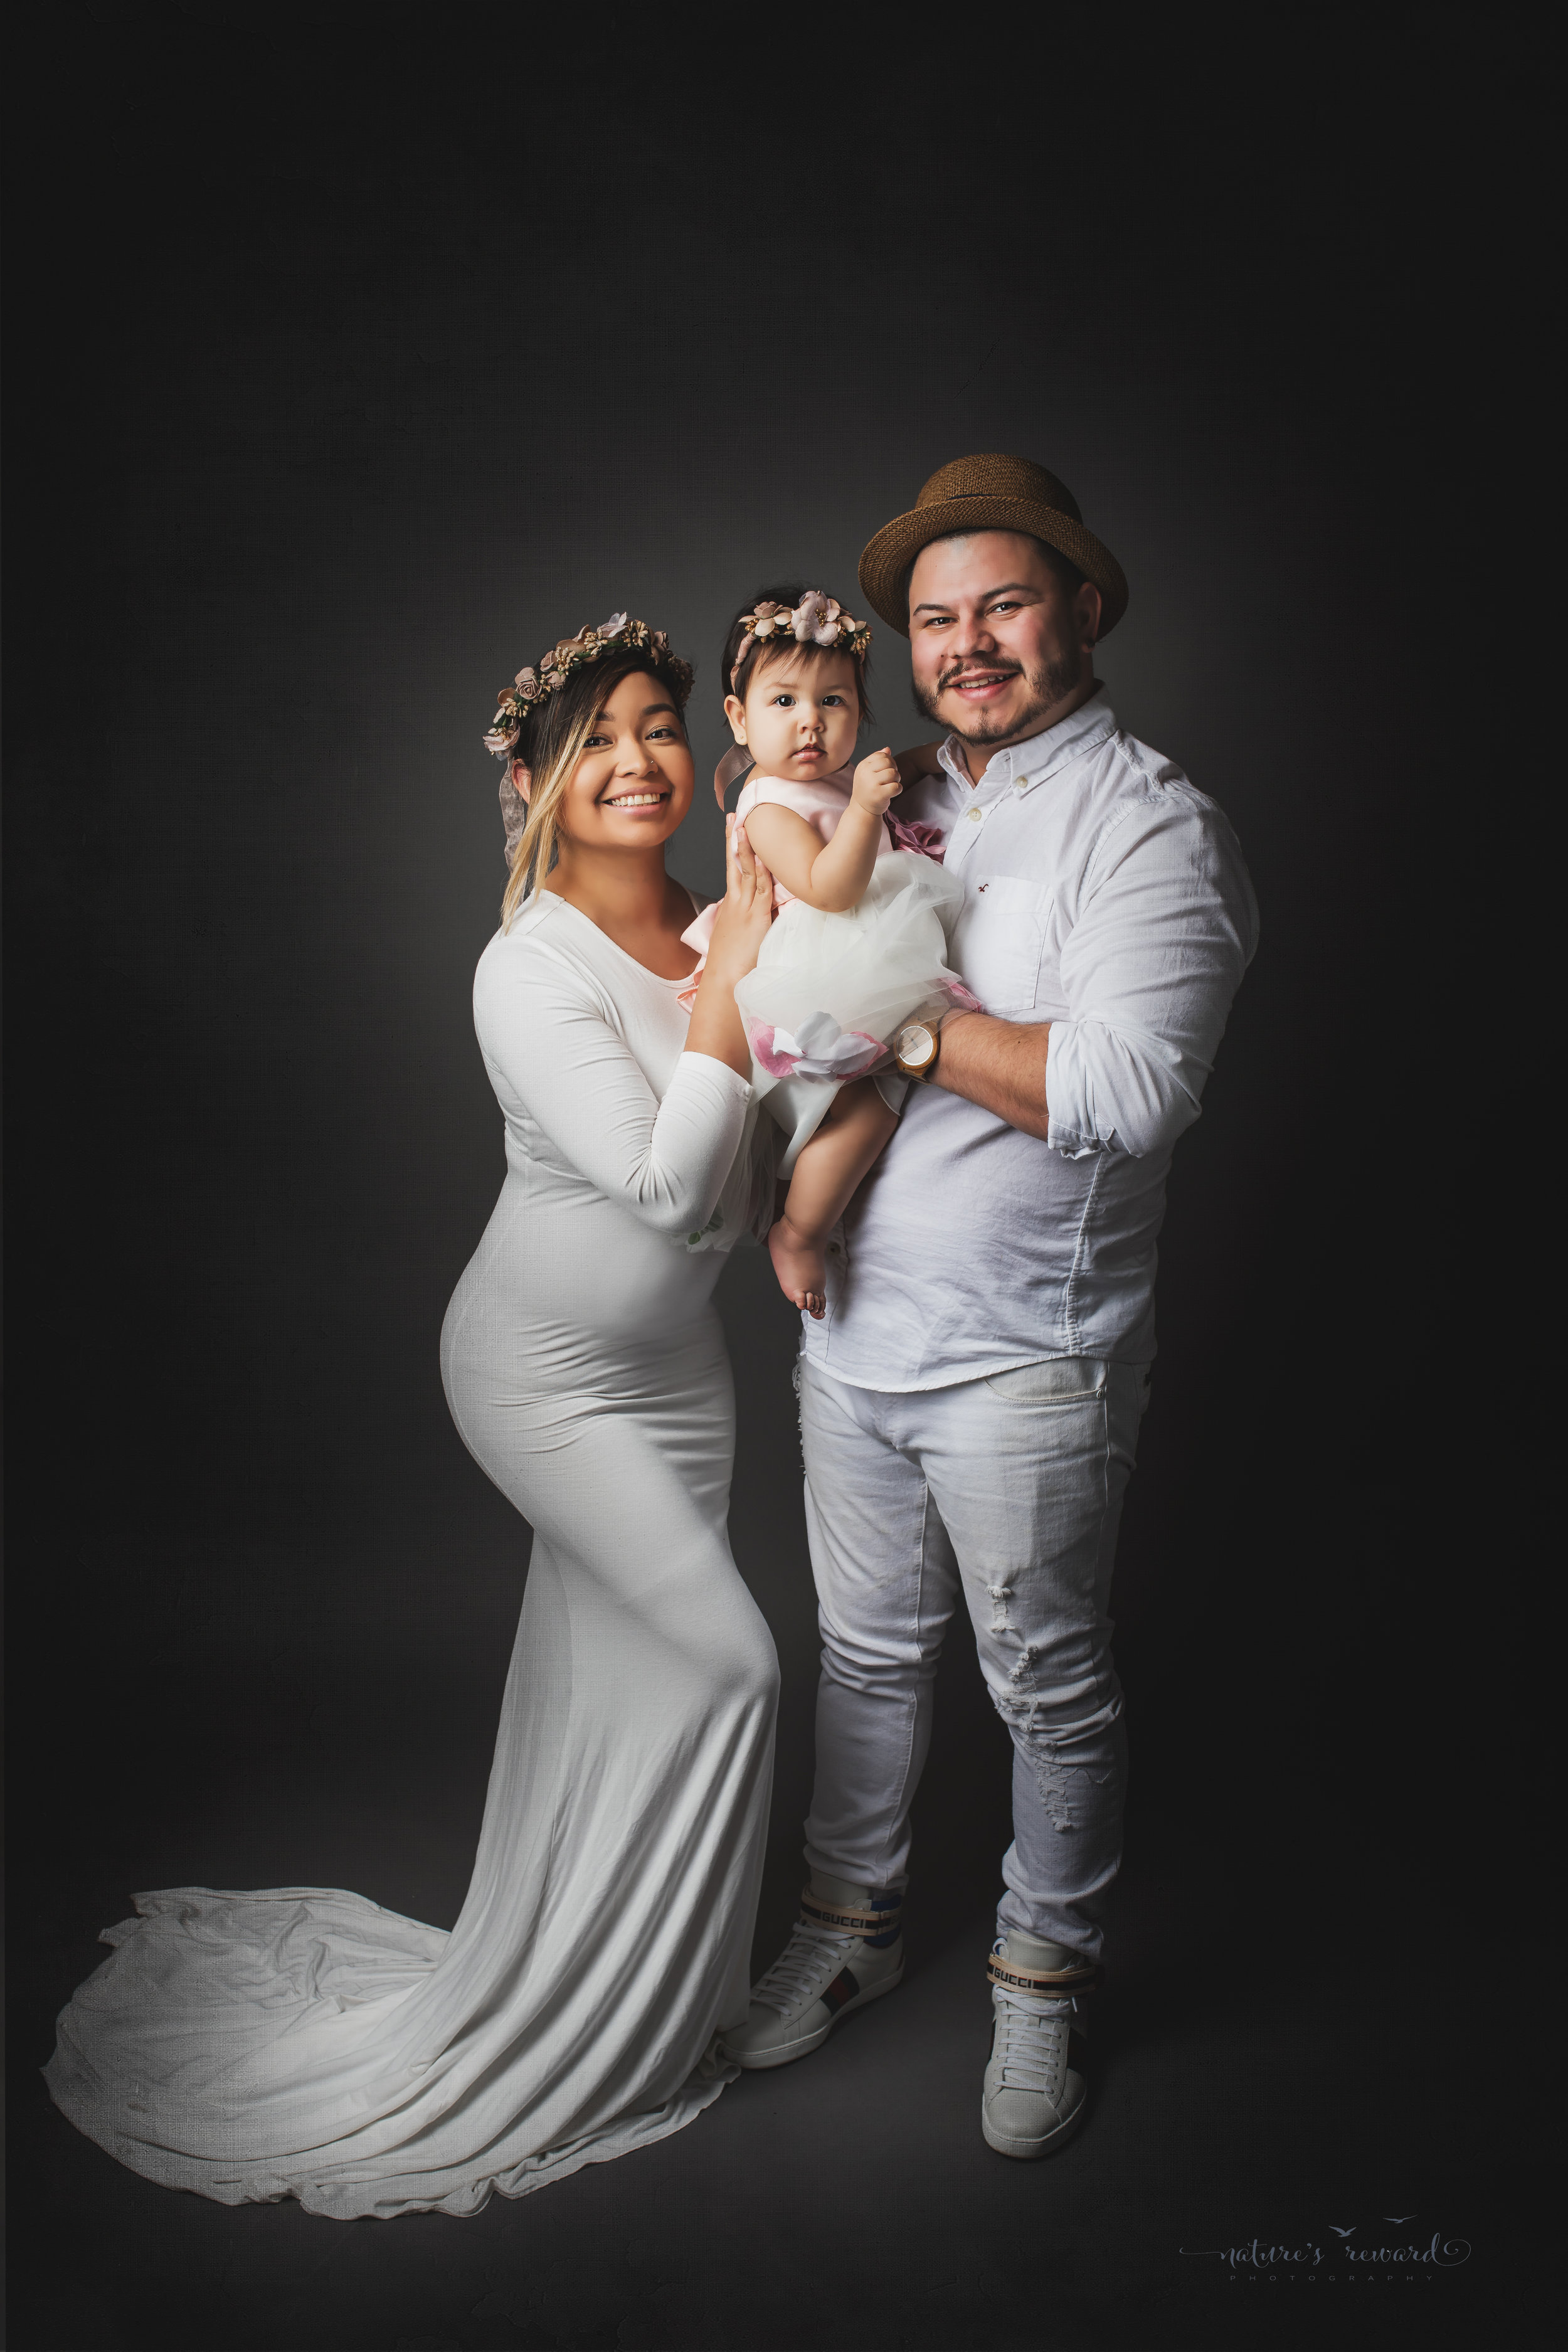 Mother, father and daughter dressed in white on a grey background, a portrait by Nature's Reward Photography